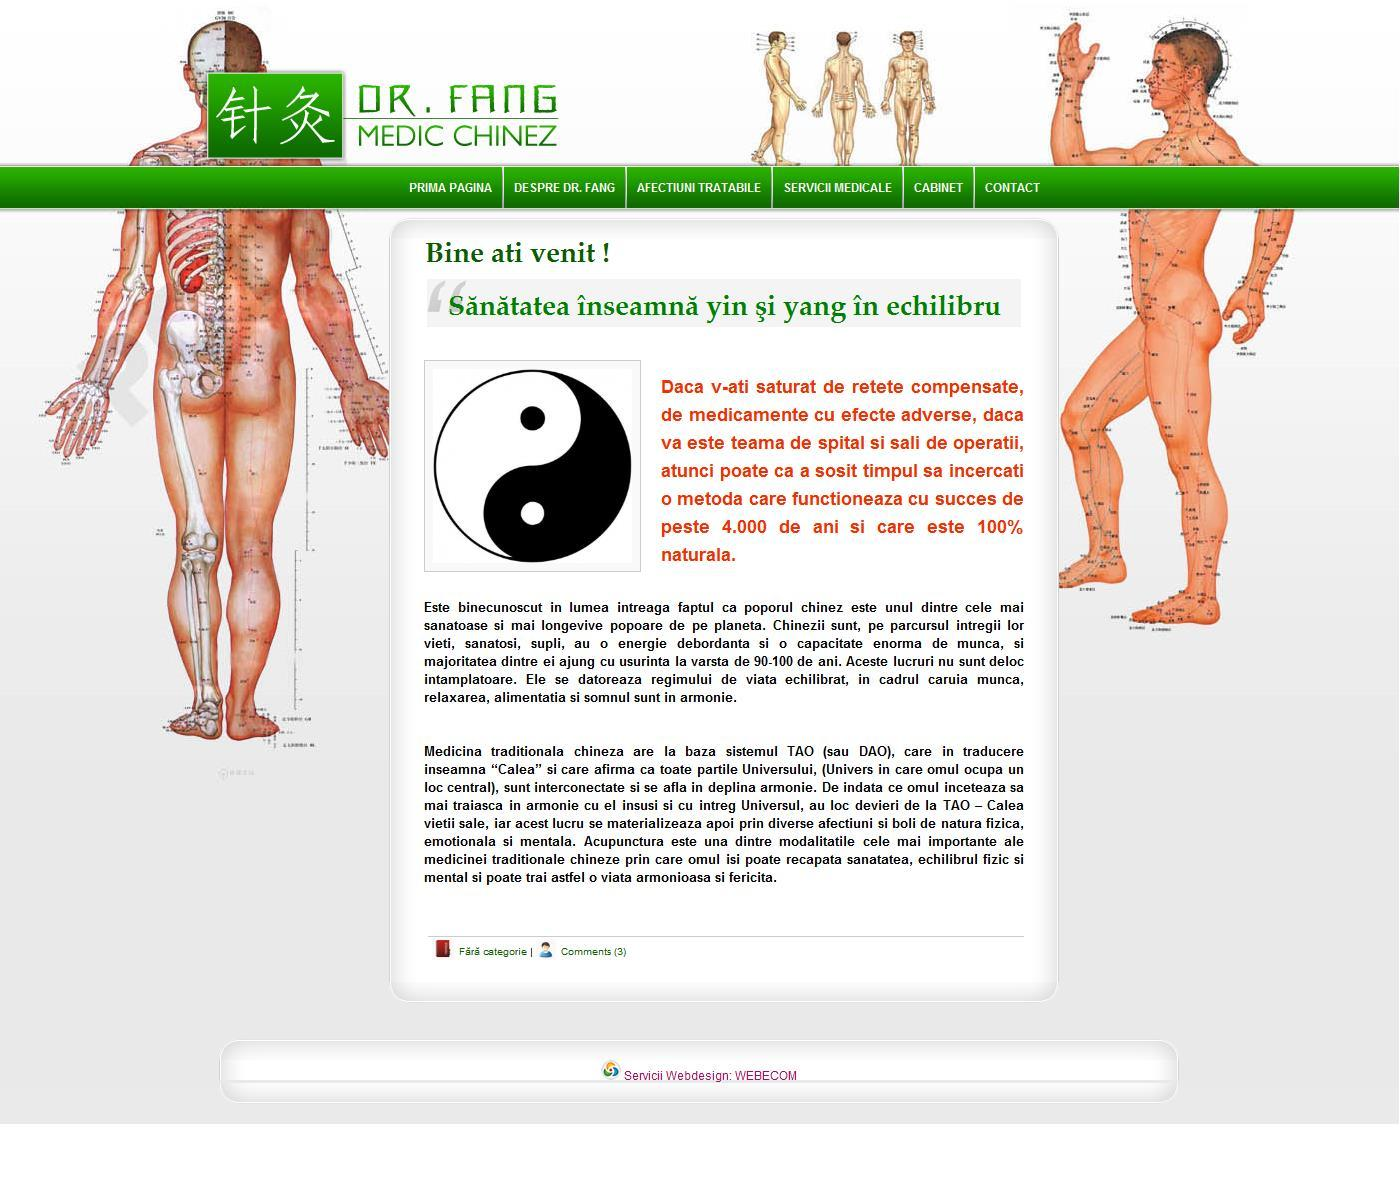 Tramante medicale folosind acupunctura - dr. Fang Shunseng.